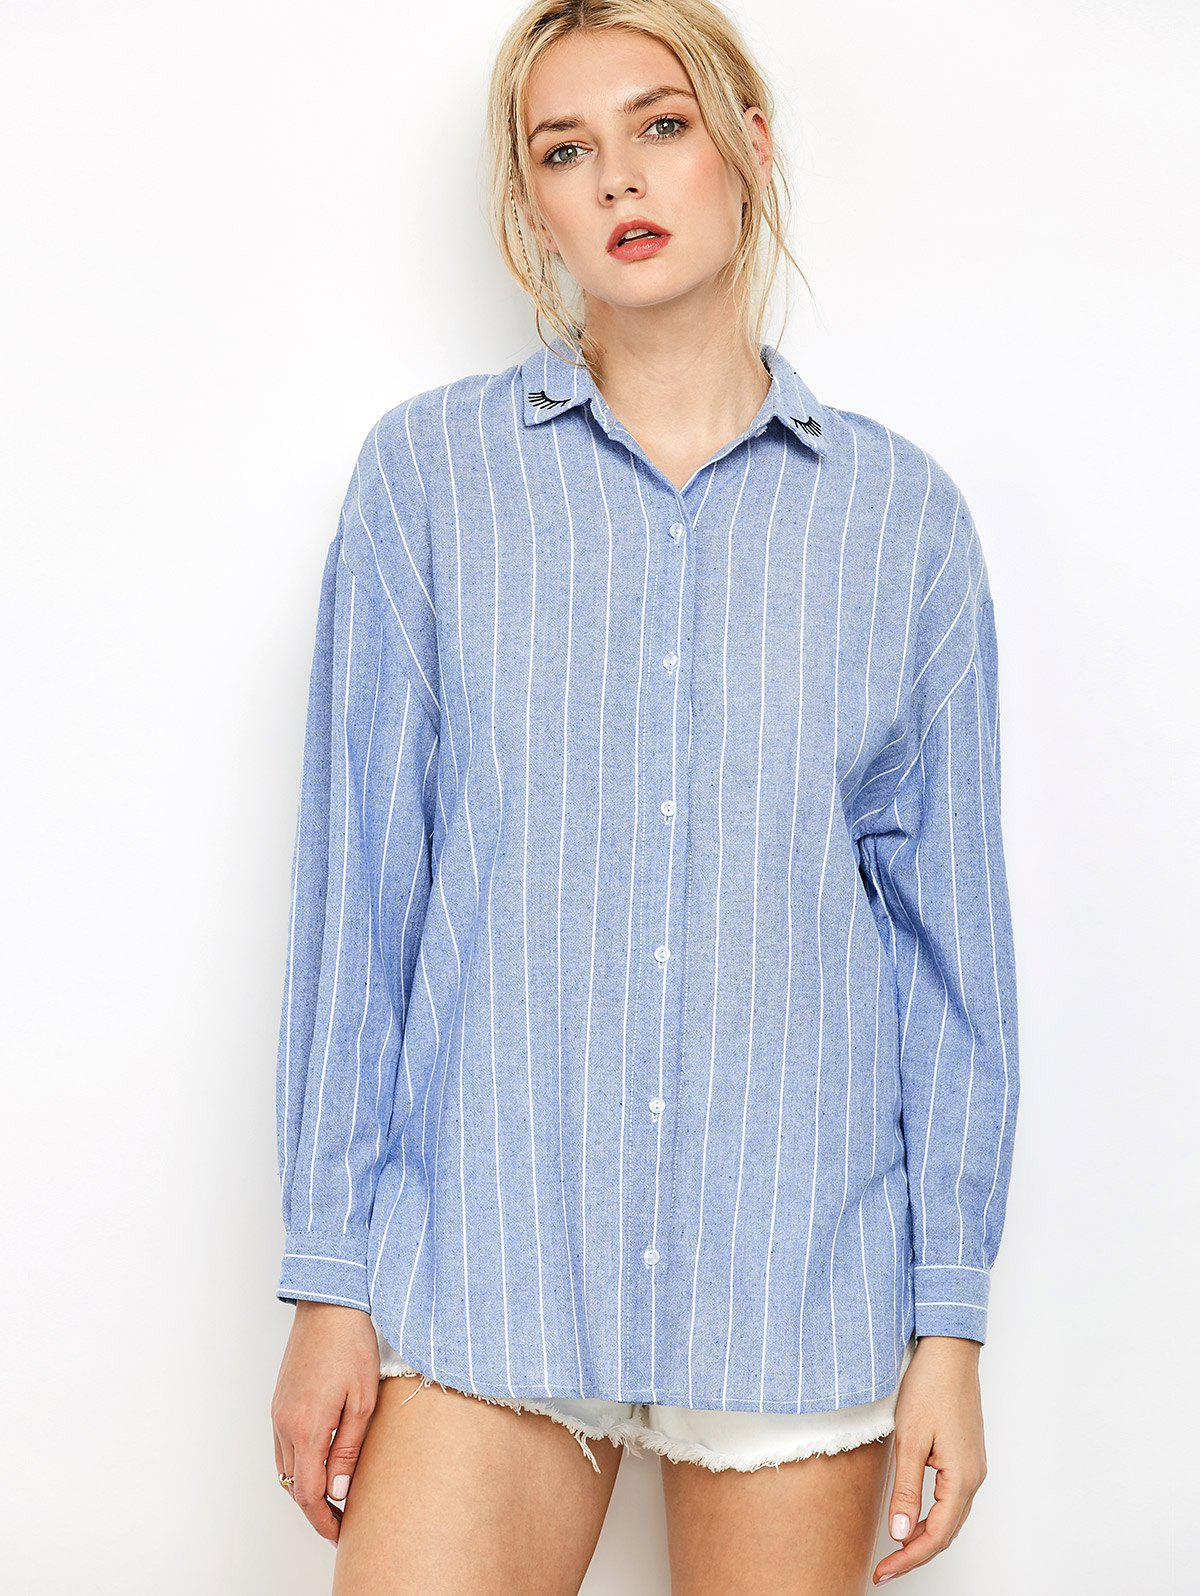 2018 oversized embroidered striped chambray work shirt for Embroidered work shirts online